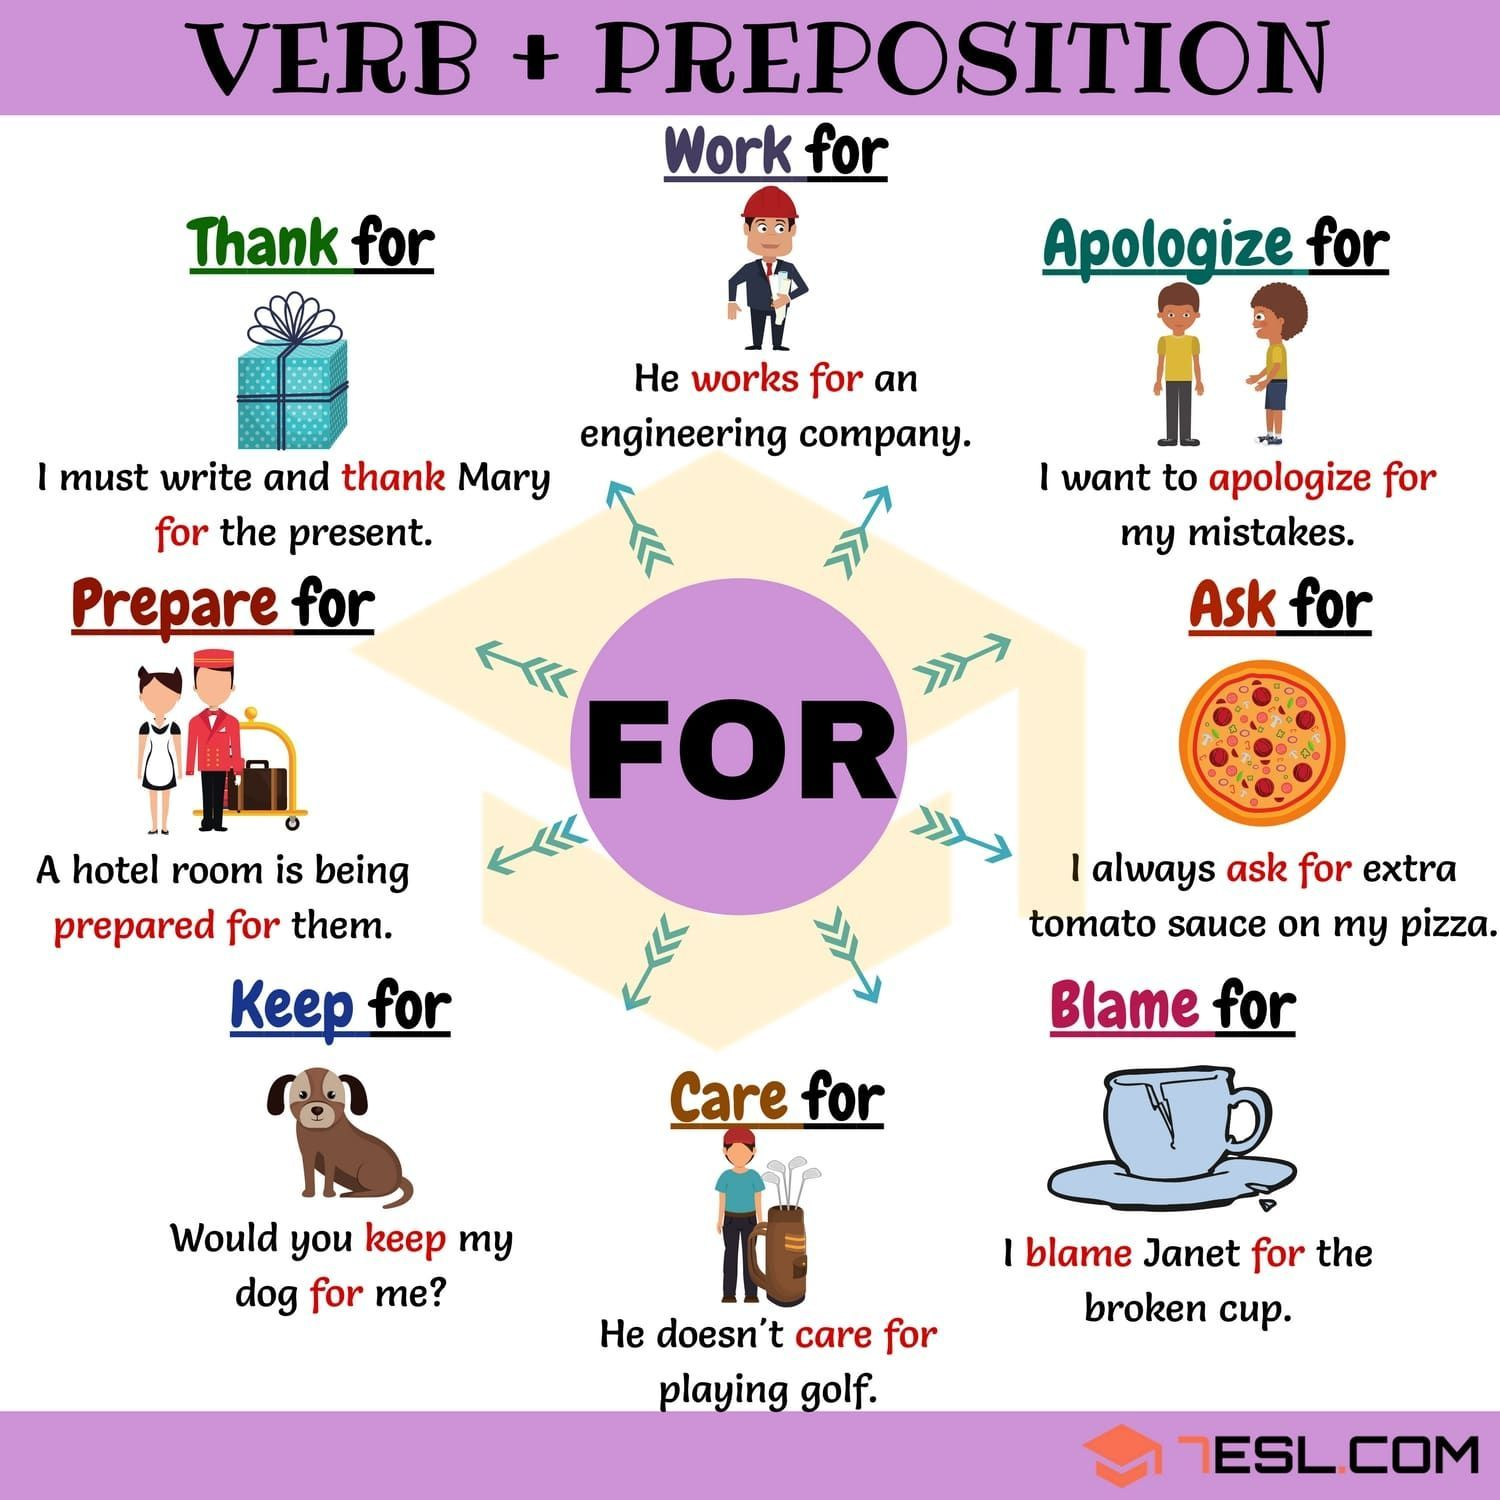 Verbs Followed By The Preposition For